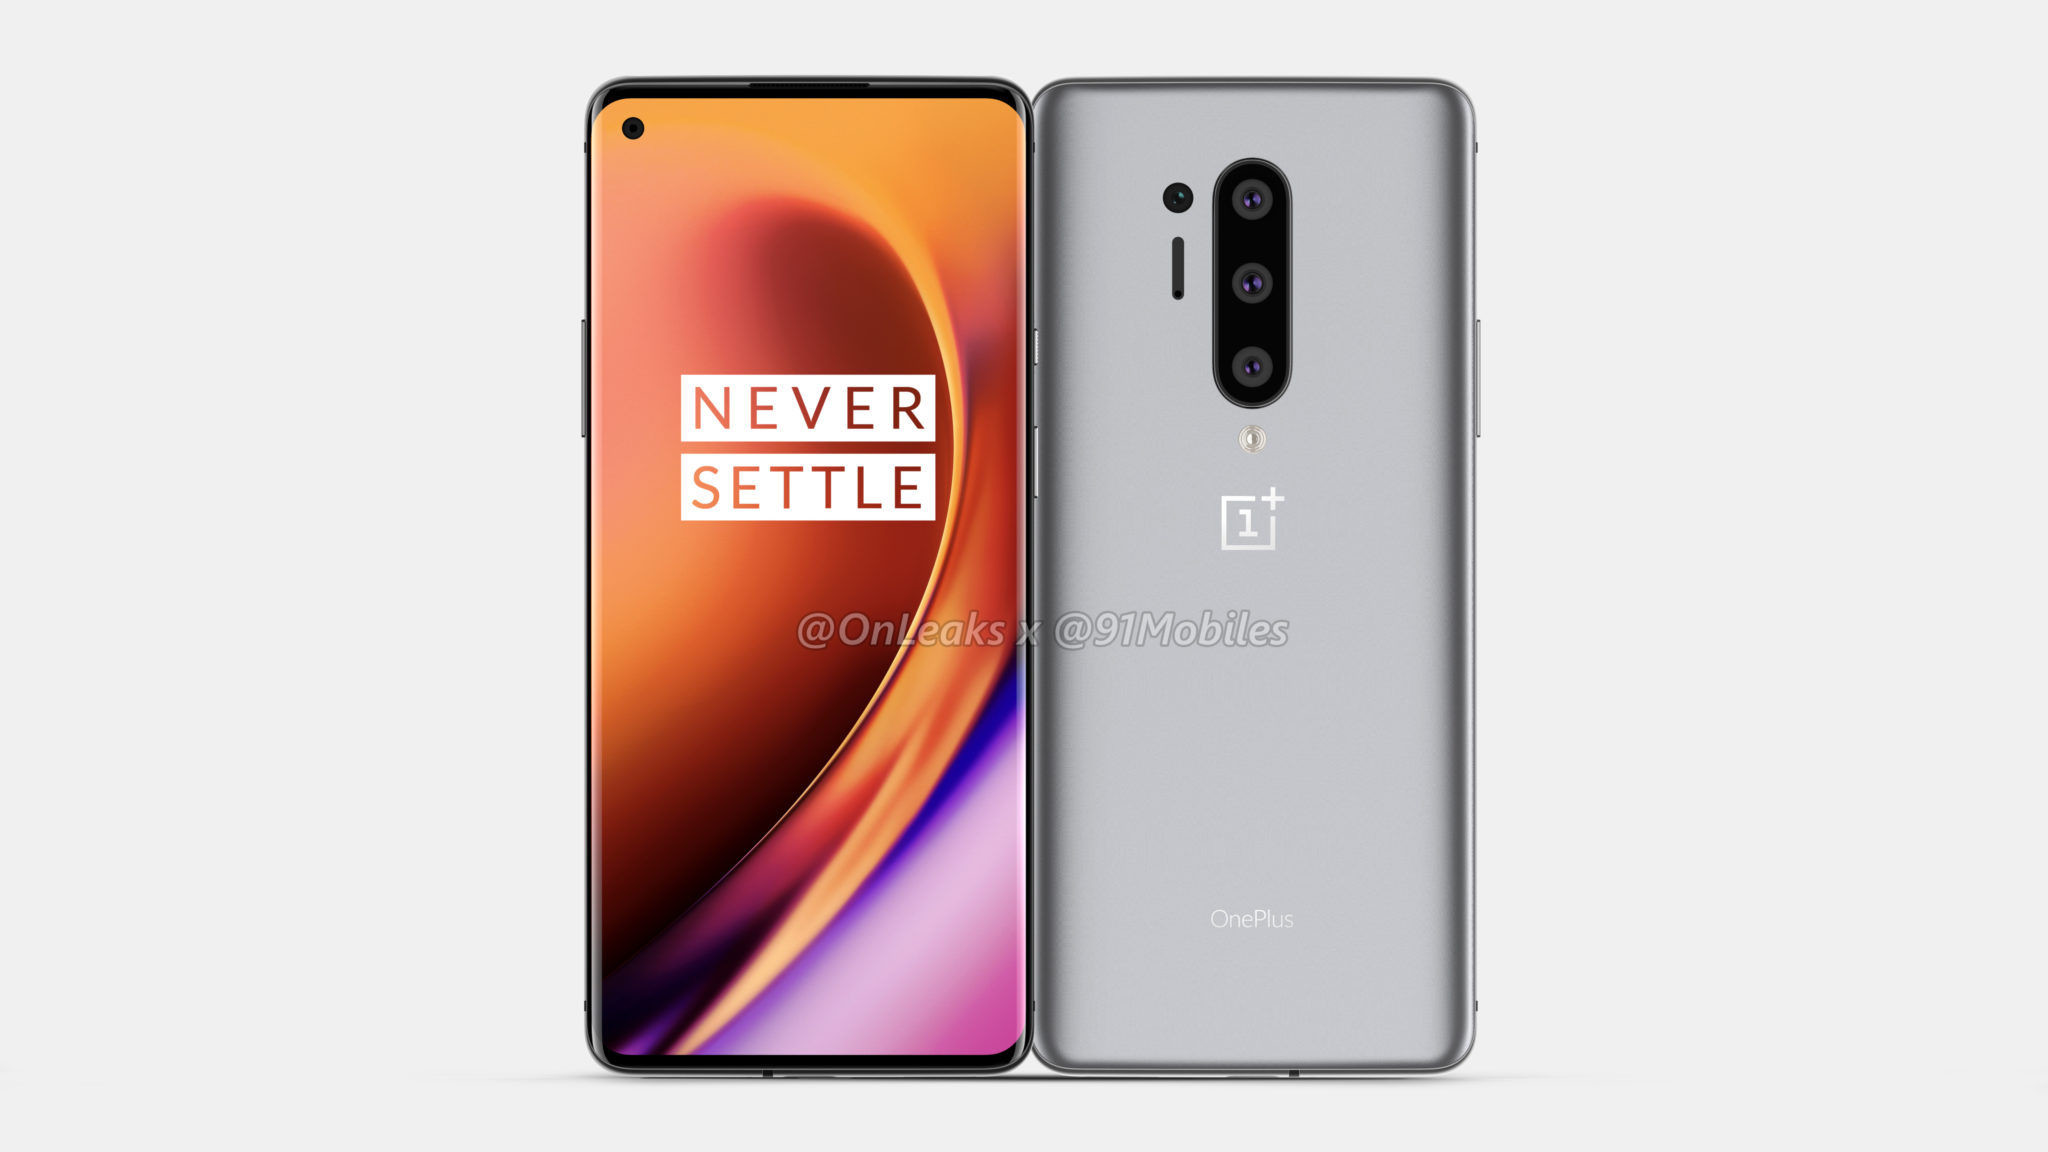 renders of OnePlus 8 Pro  - image 1